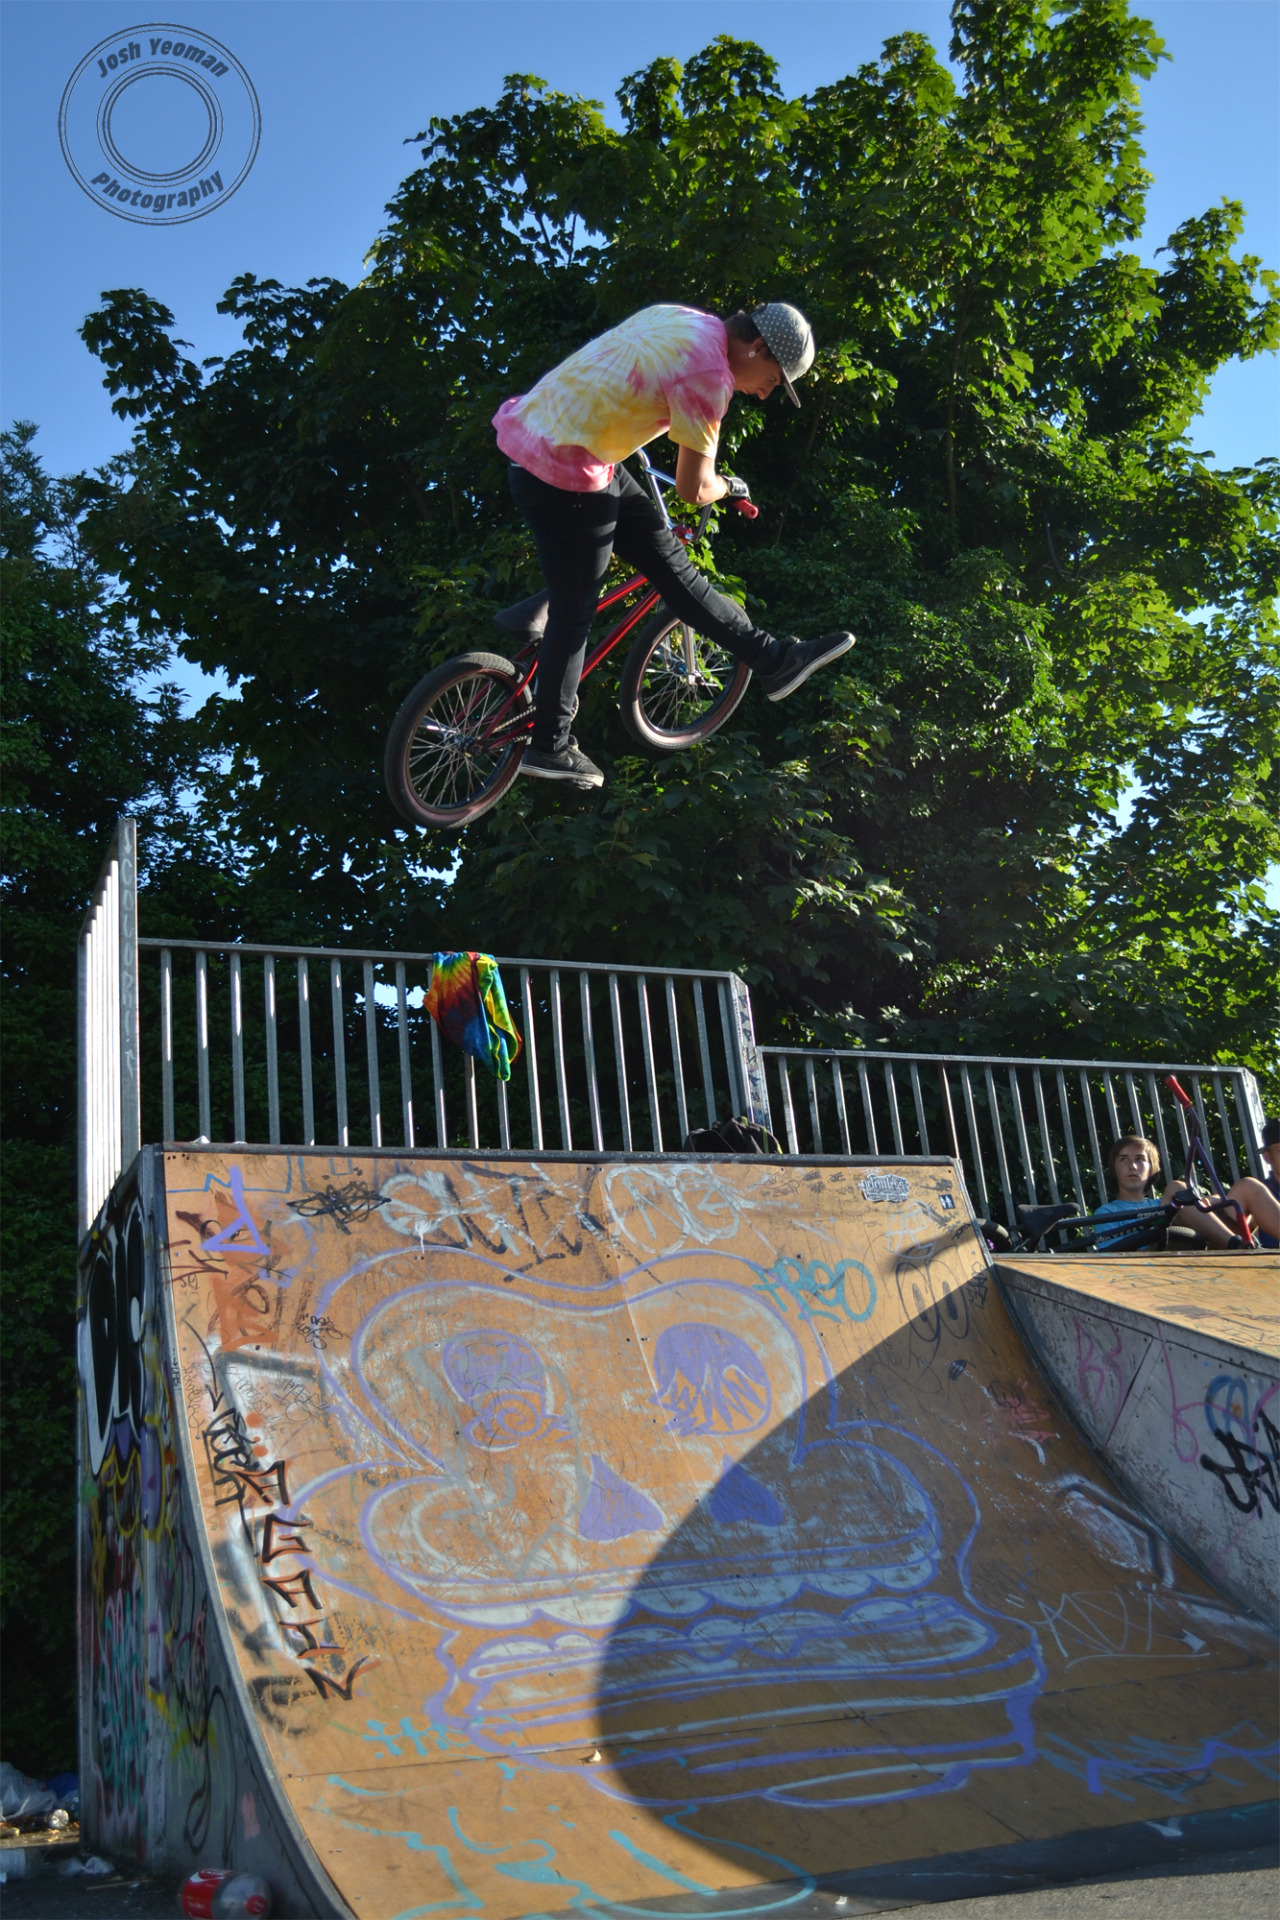 Ben Speller- Can Air to be completely honest, this is probably my favourite bmx picture that I've ever taken